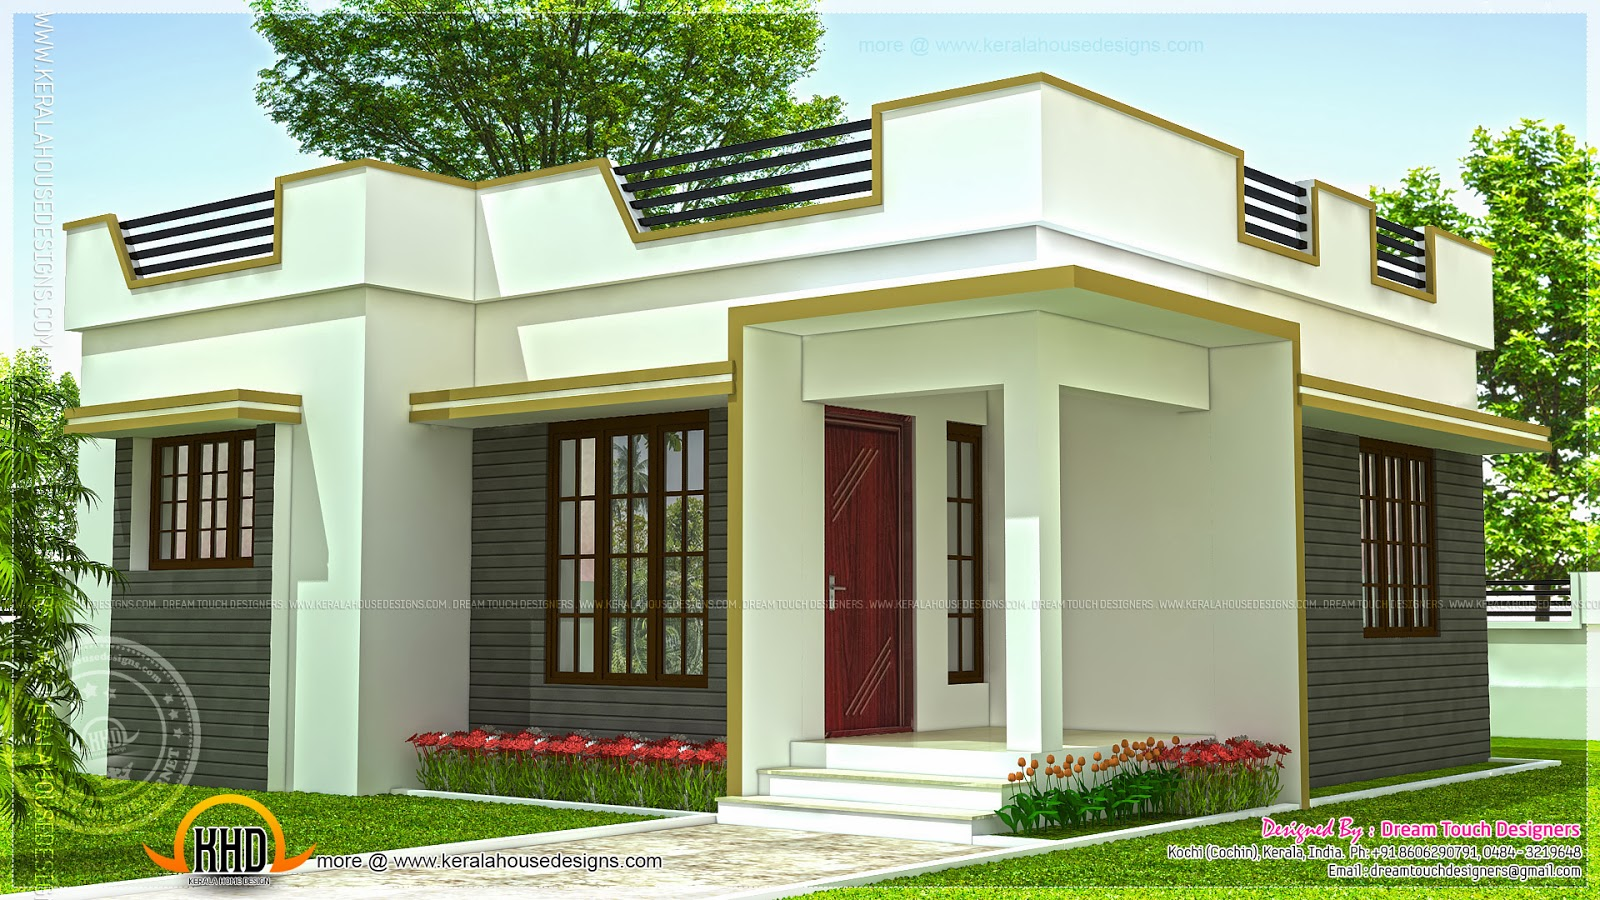 lately 21 small house design kerala small house keralajpg 1600